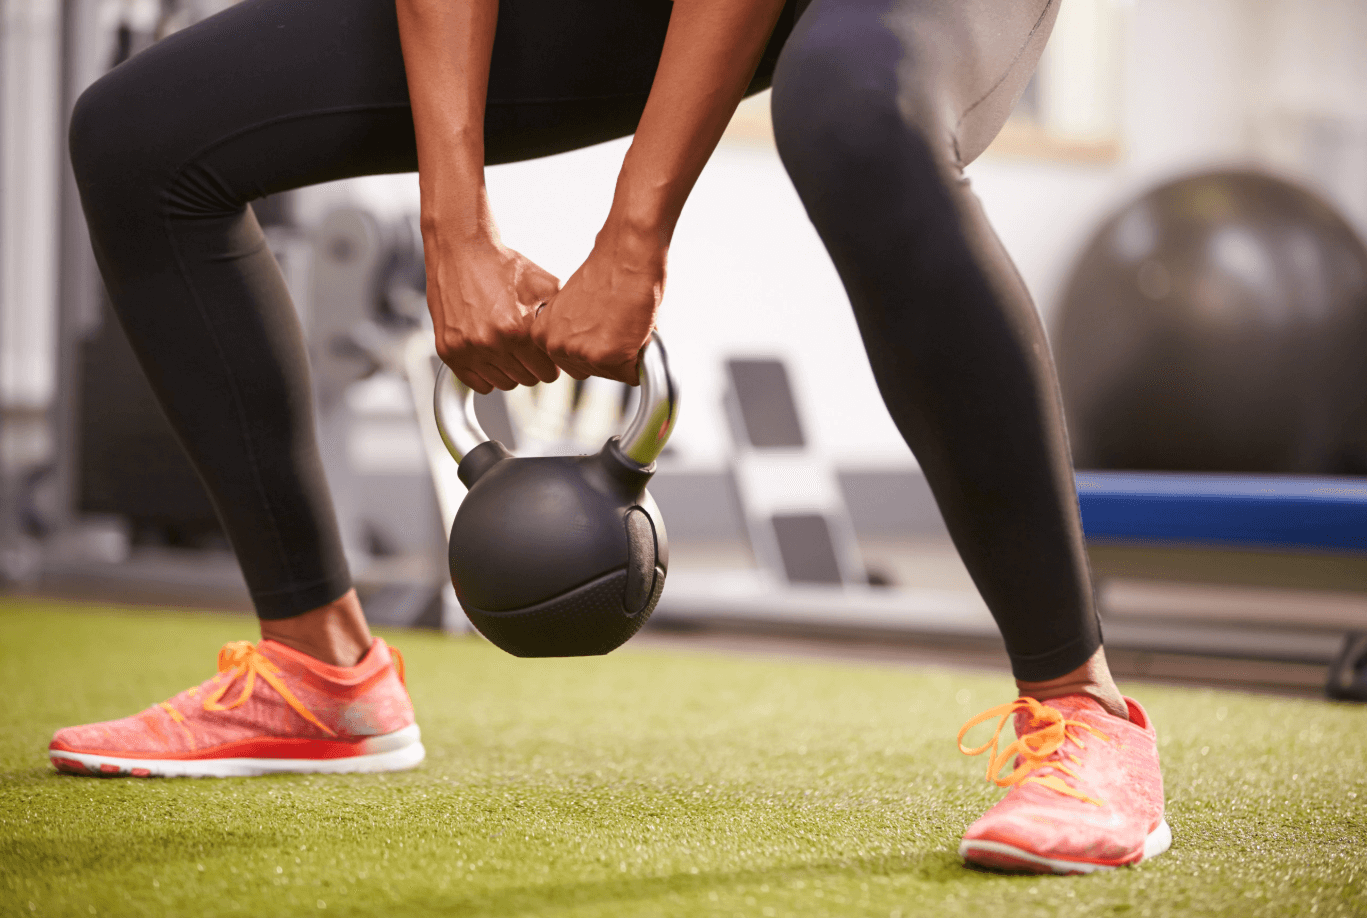 10 functional exercises